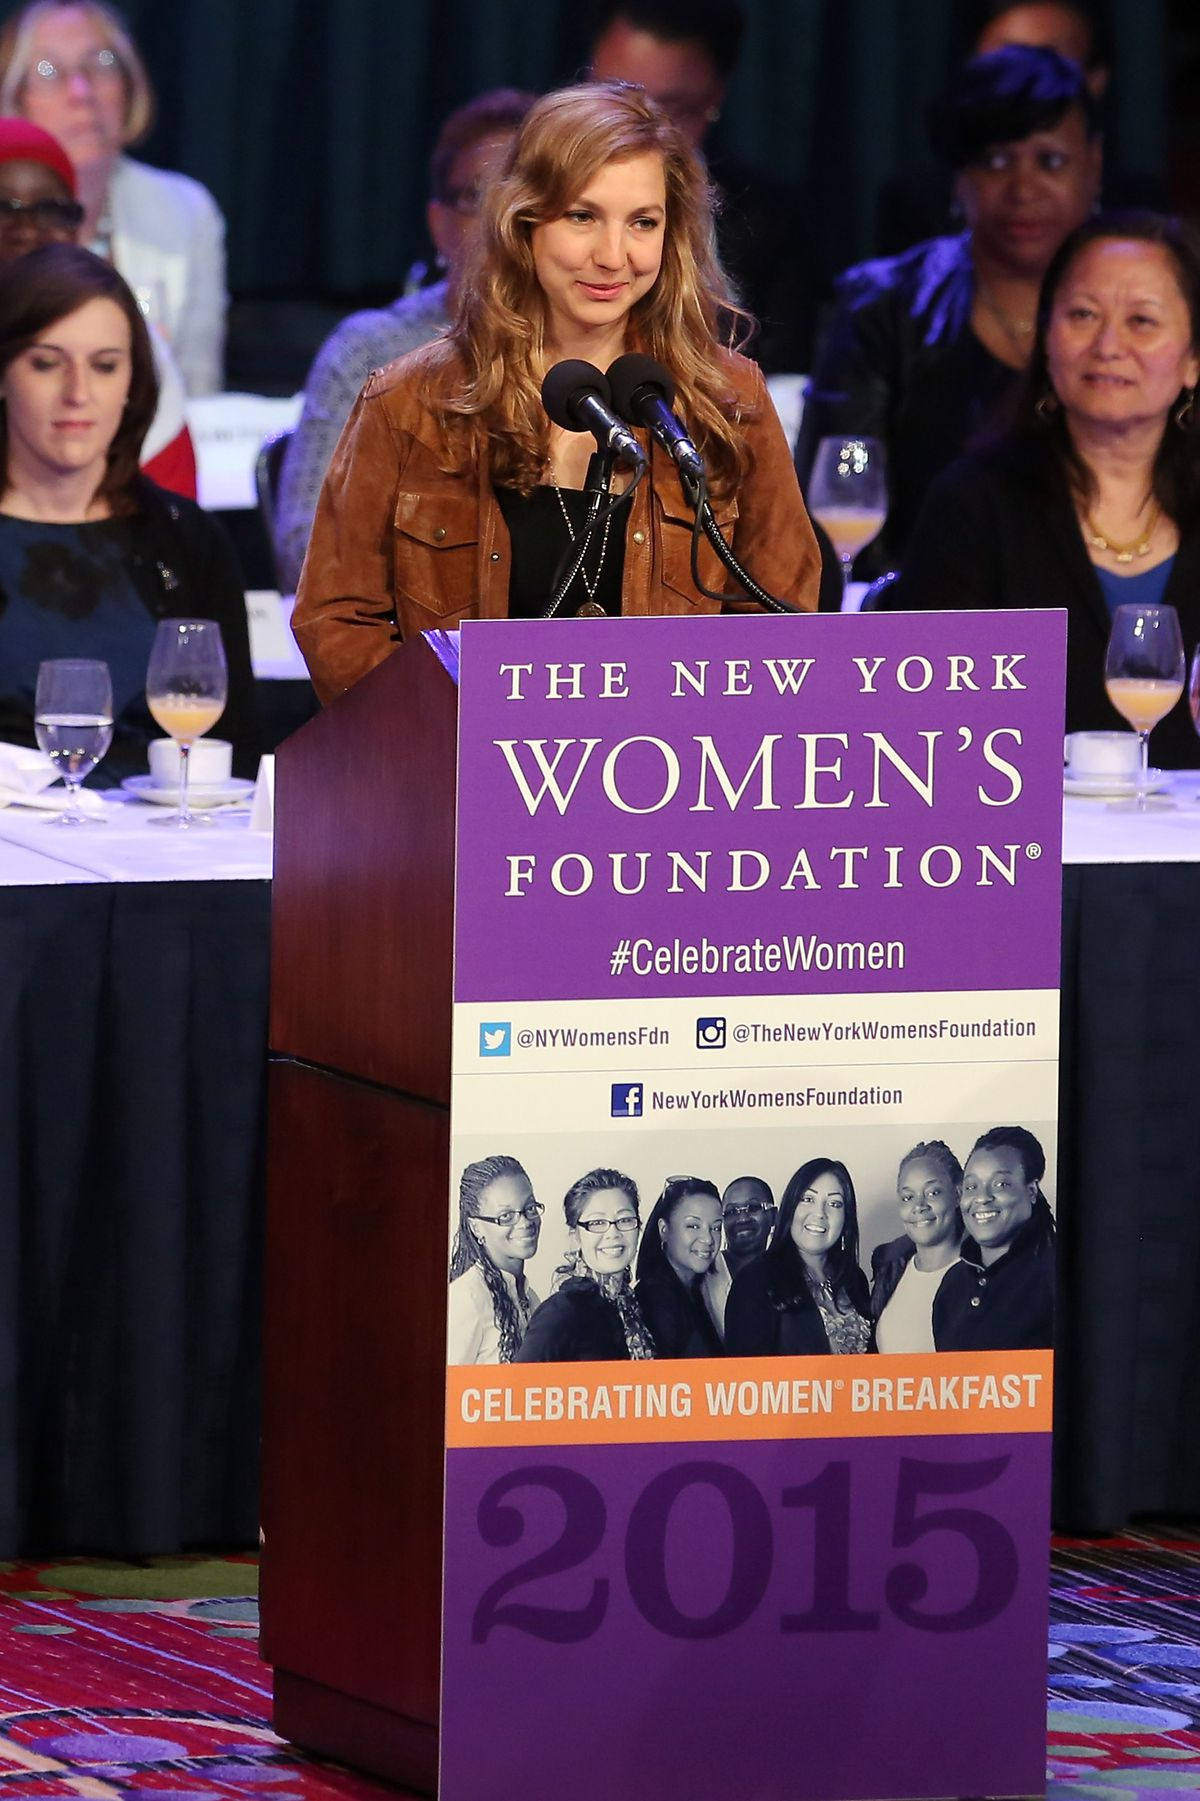 Leah Hunt-Hendrix speaks at an rostrum at an event hosted by the Women's Foundation.